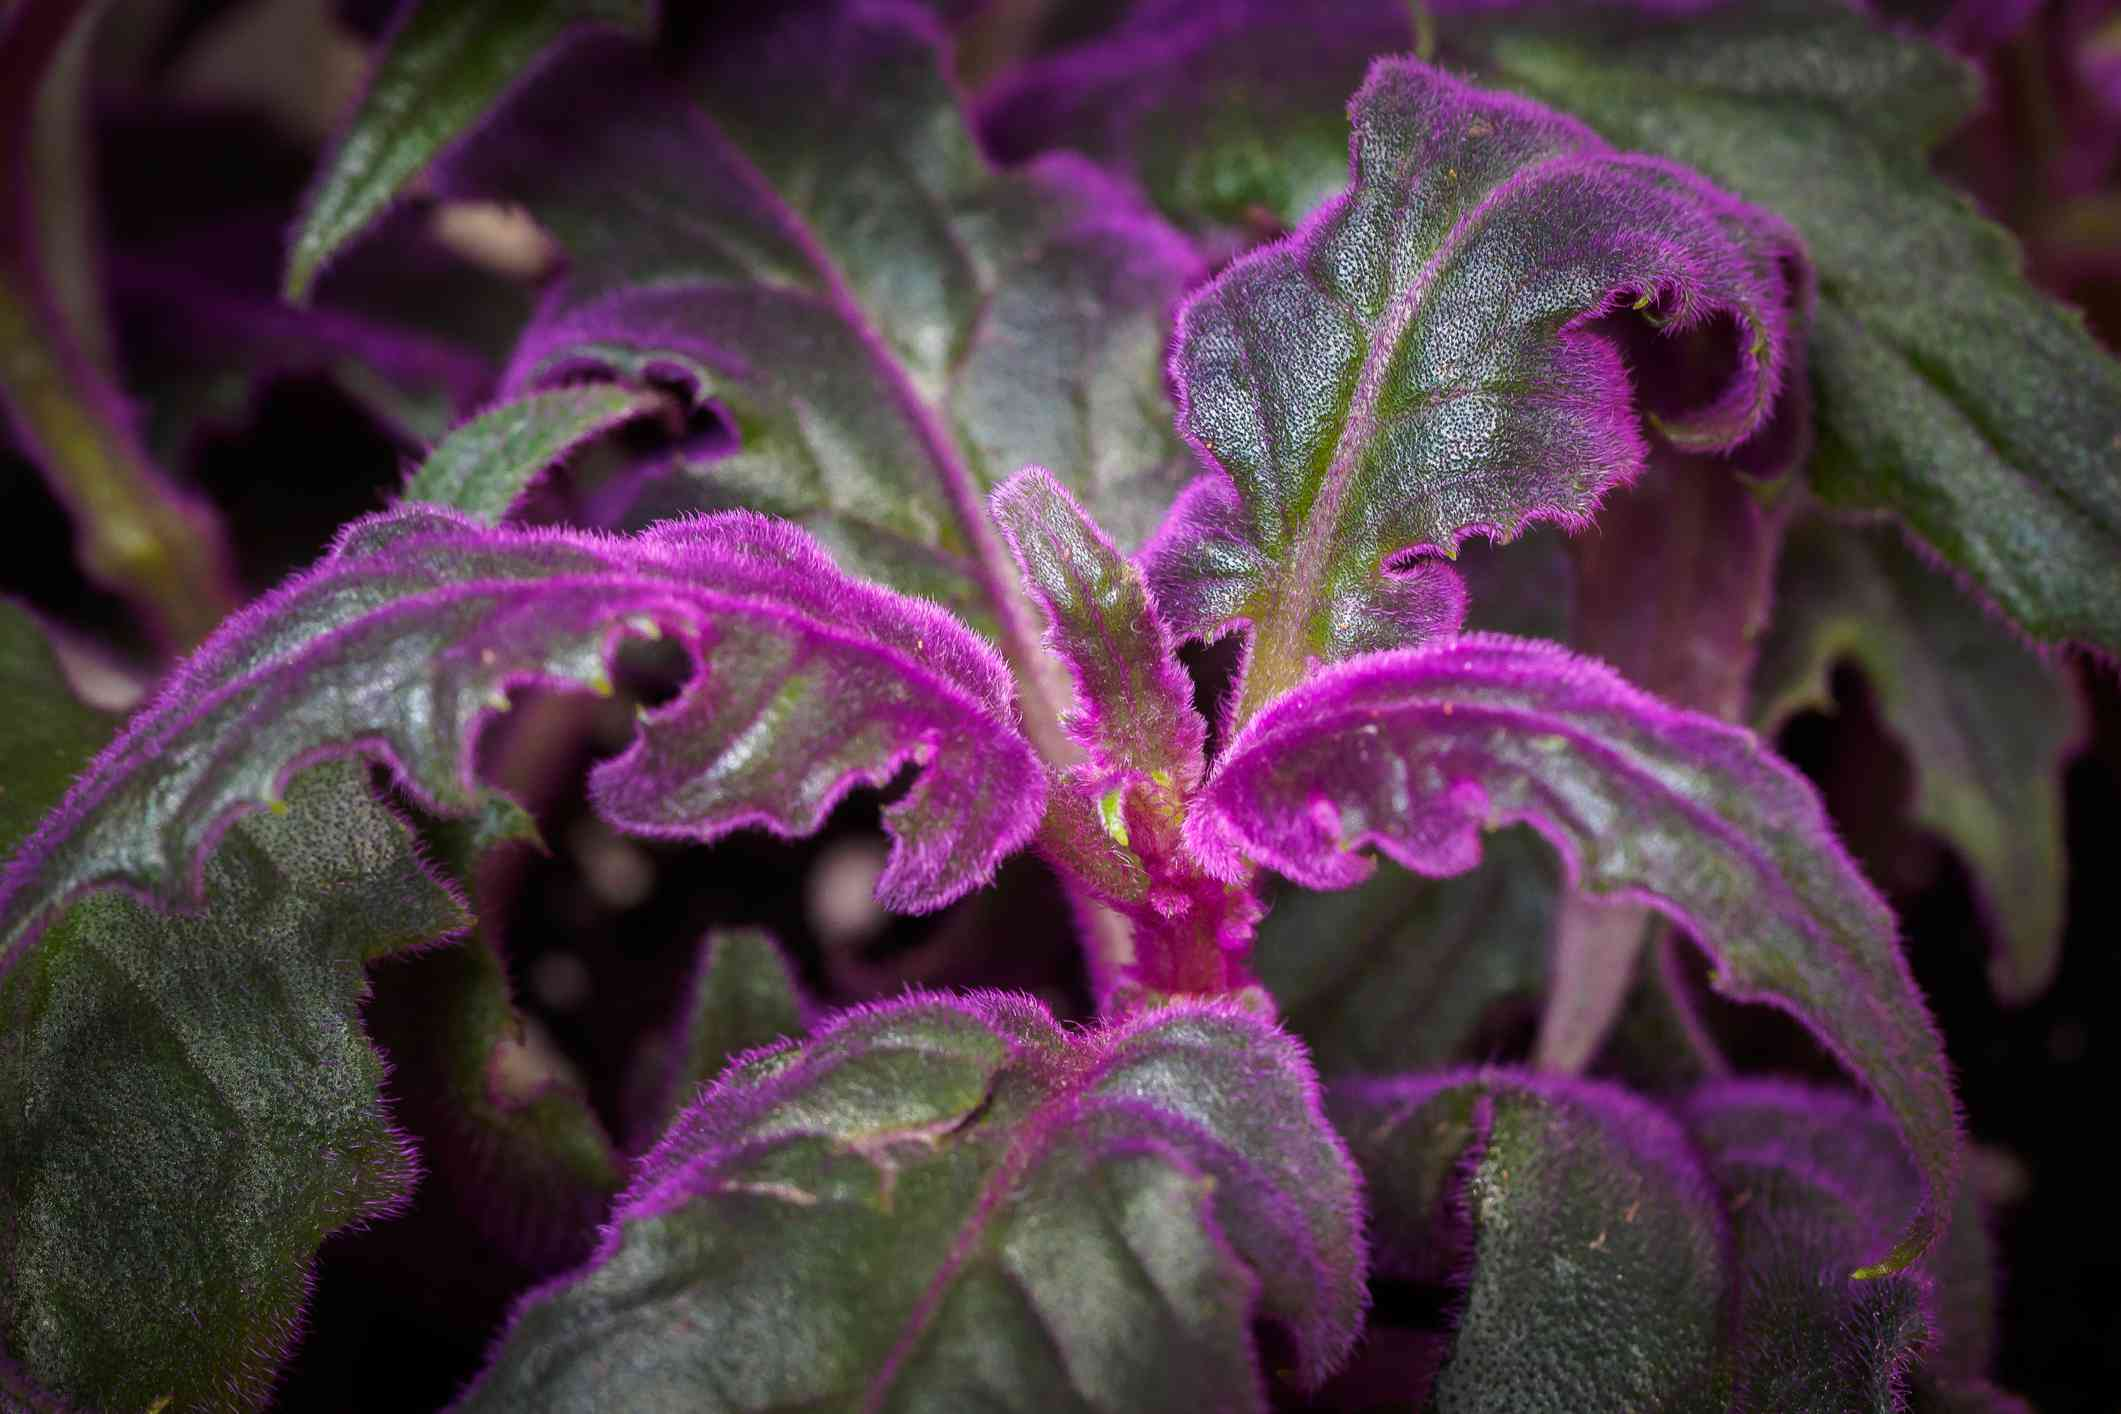 close-up of purple passion plant with green leaves and bright purple fuzz